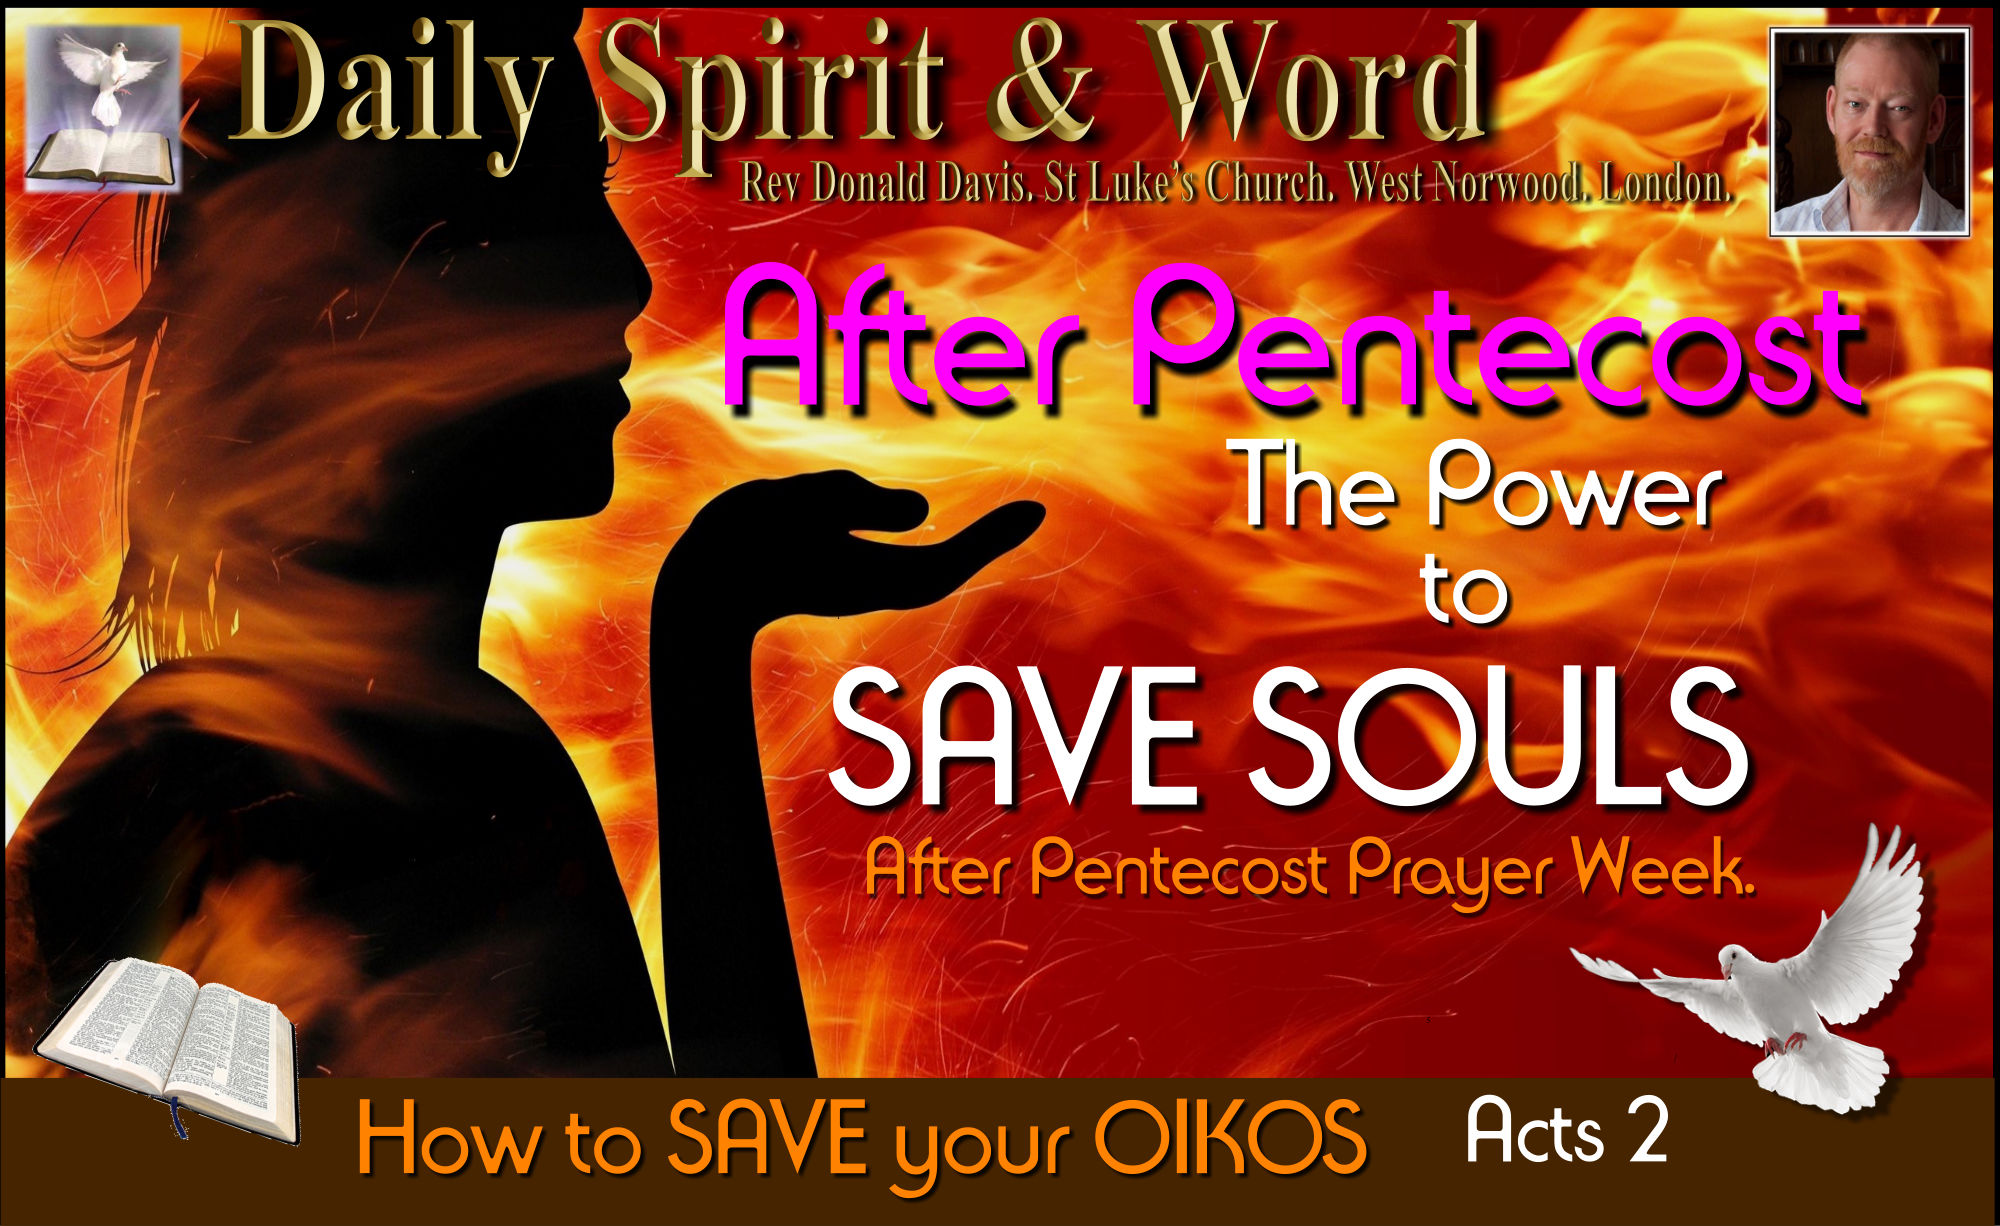 After the Pentecost Prayer Week, National Evangelisation, Power to SAVE